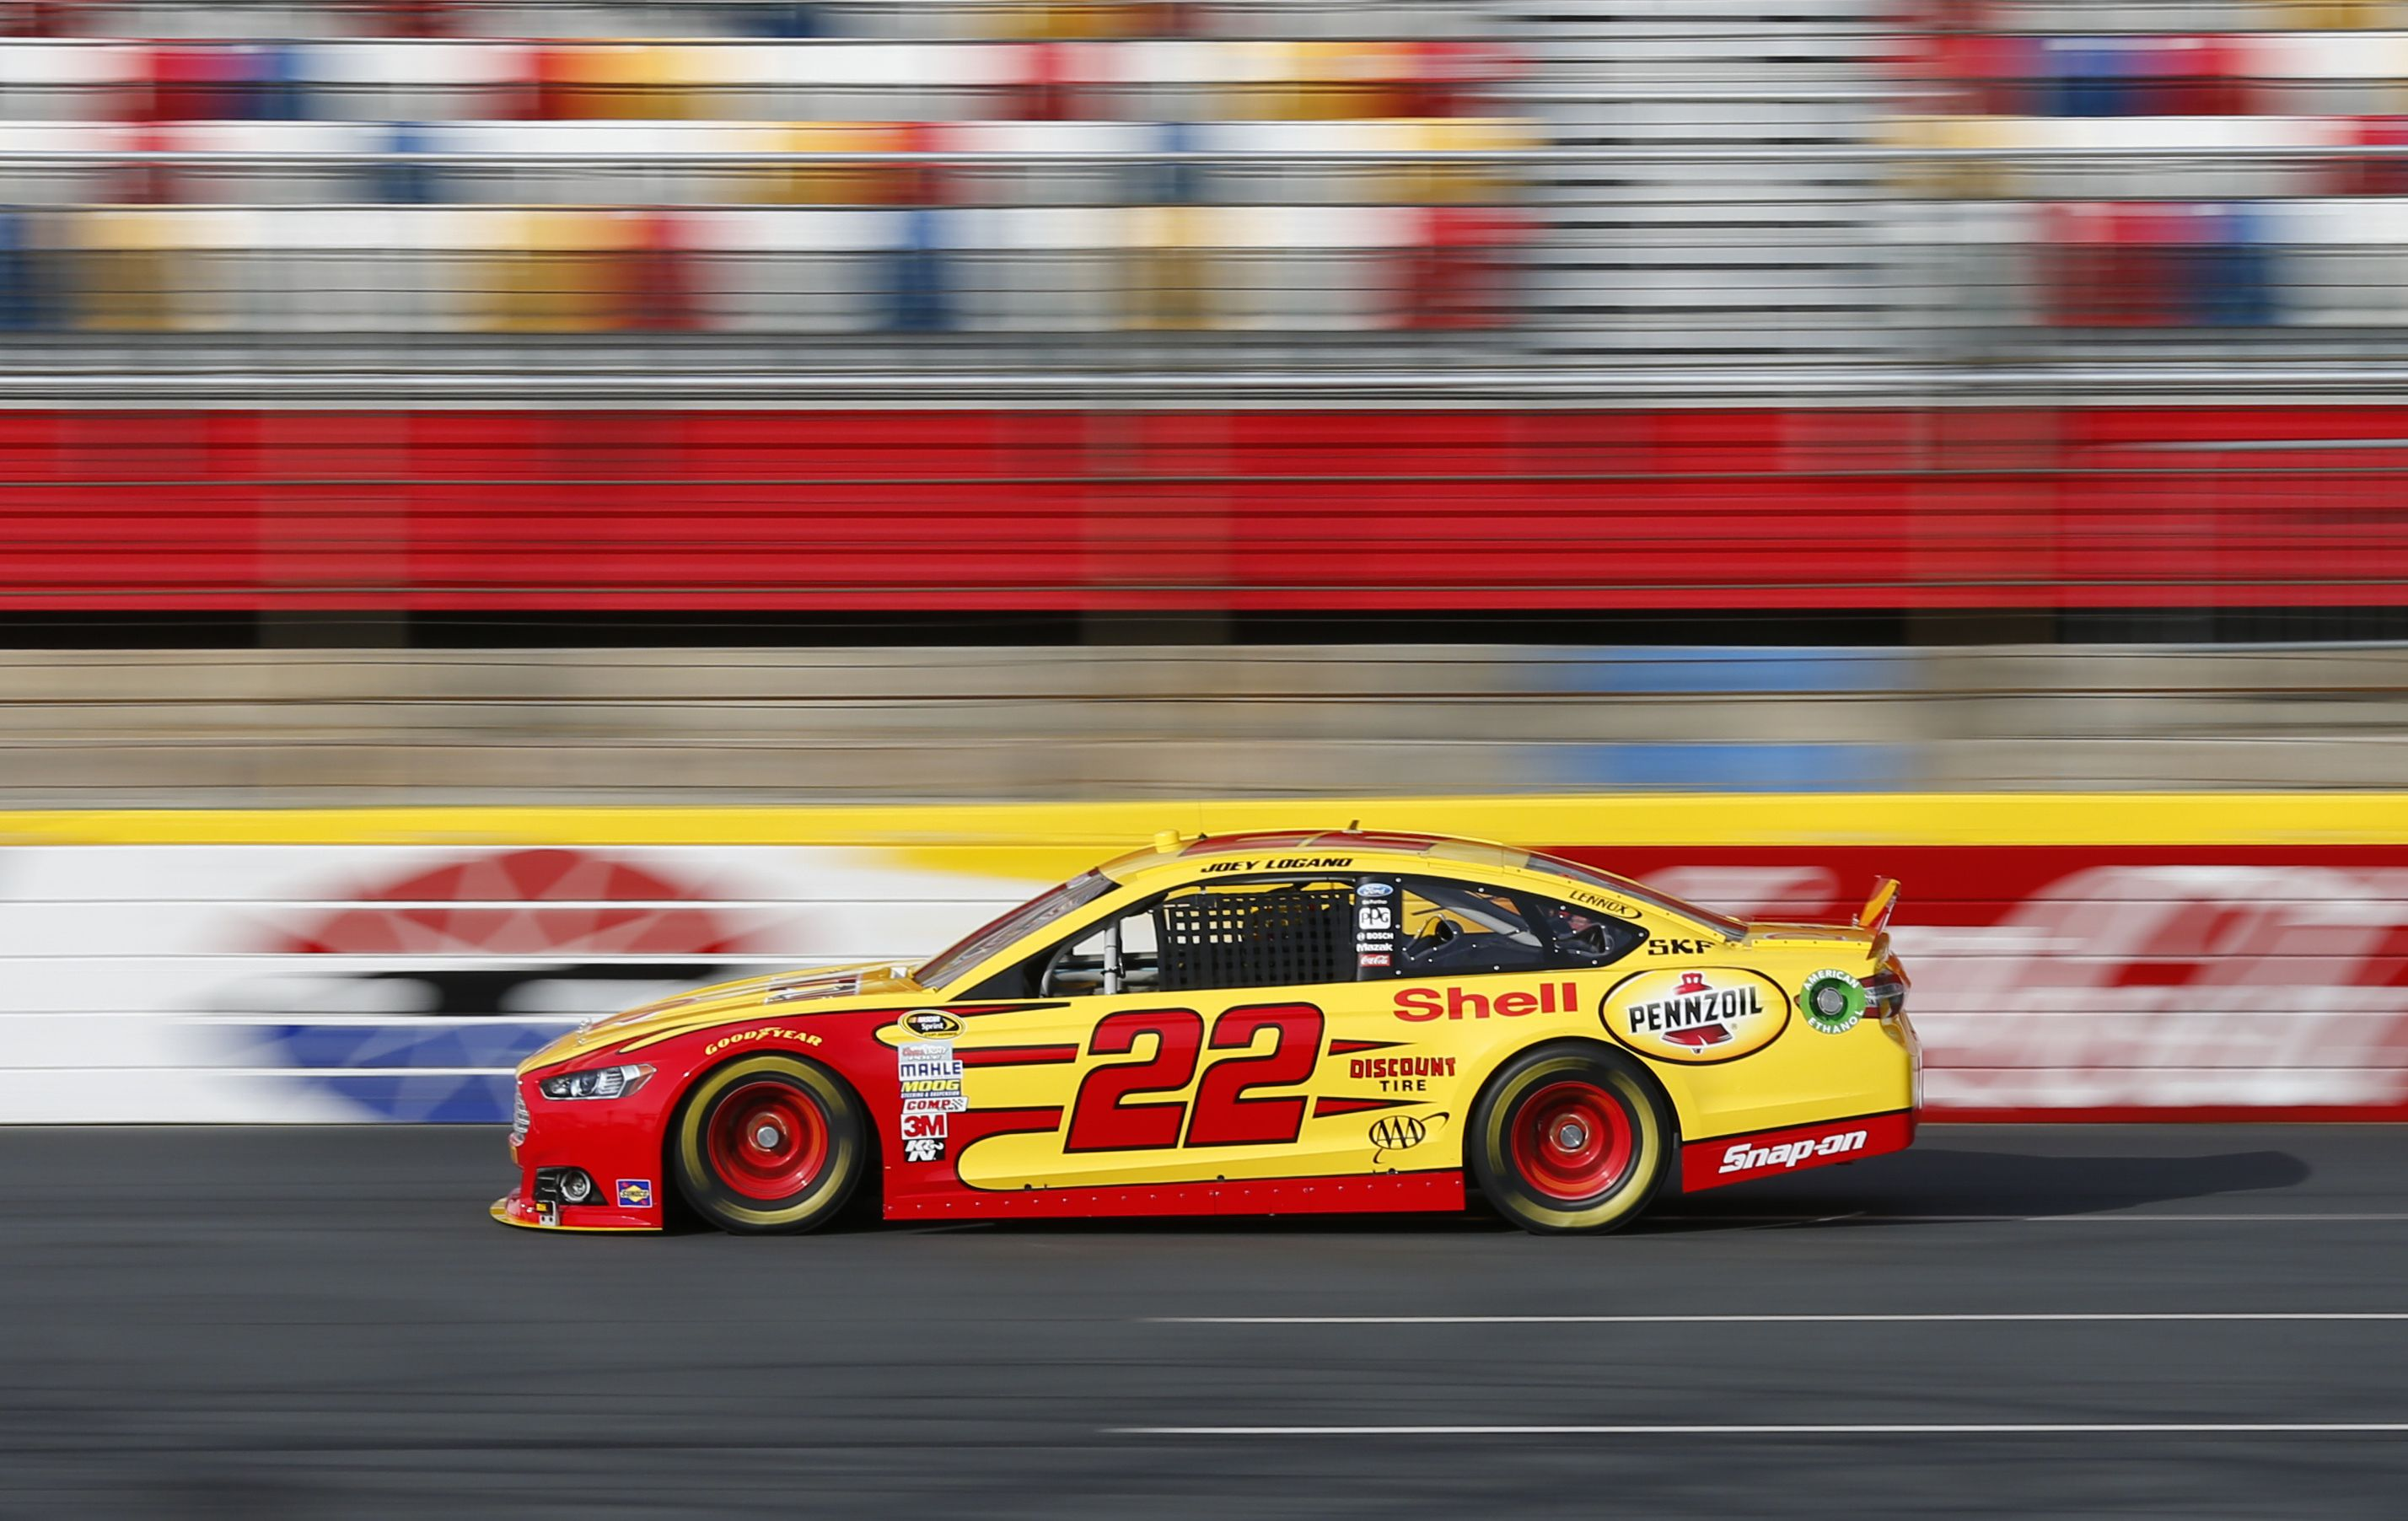 Nascar 2013 this is joey lonago 2013 ford fusion